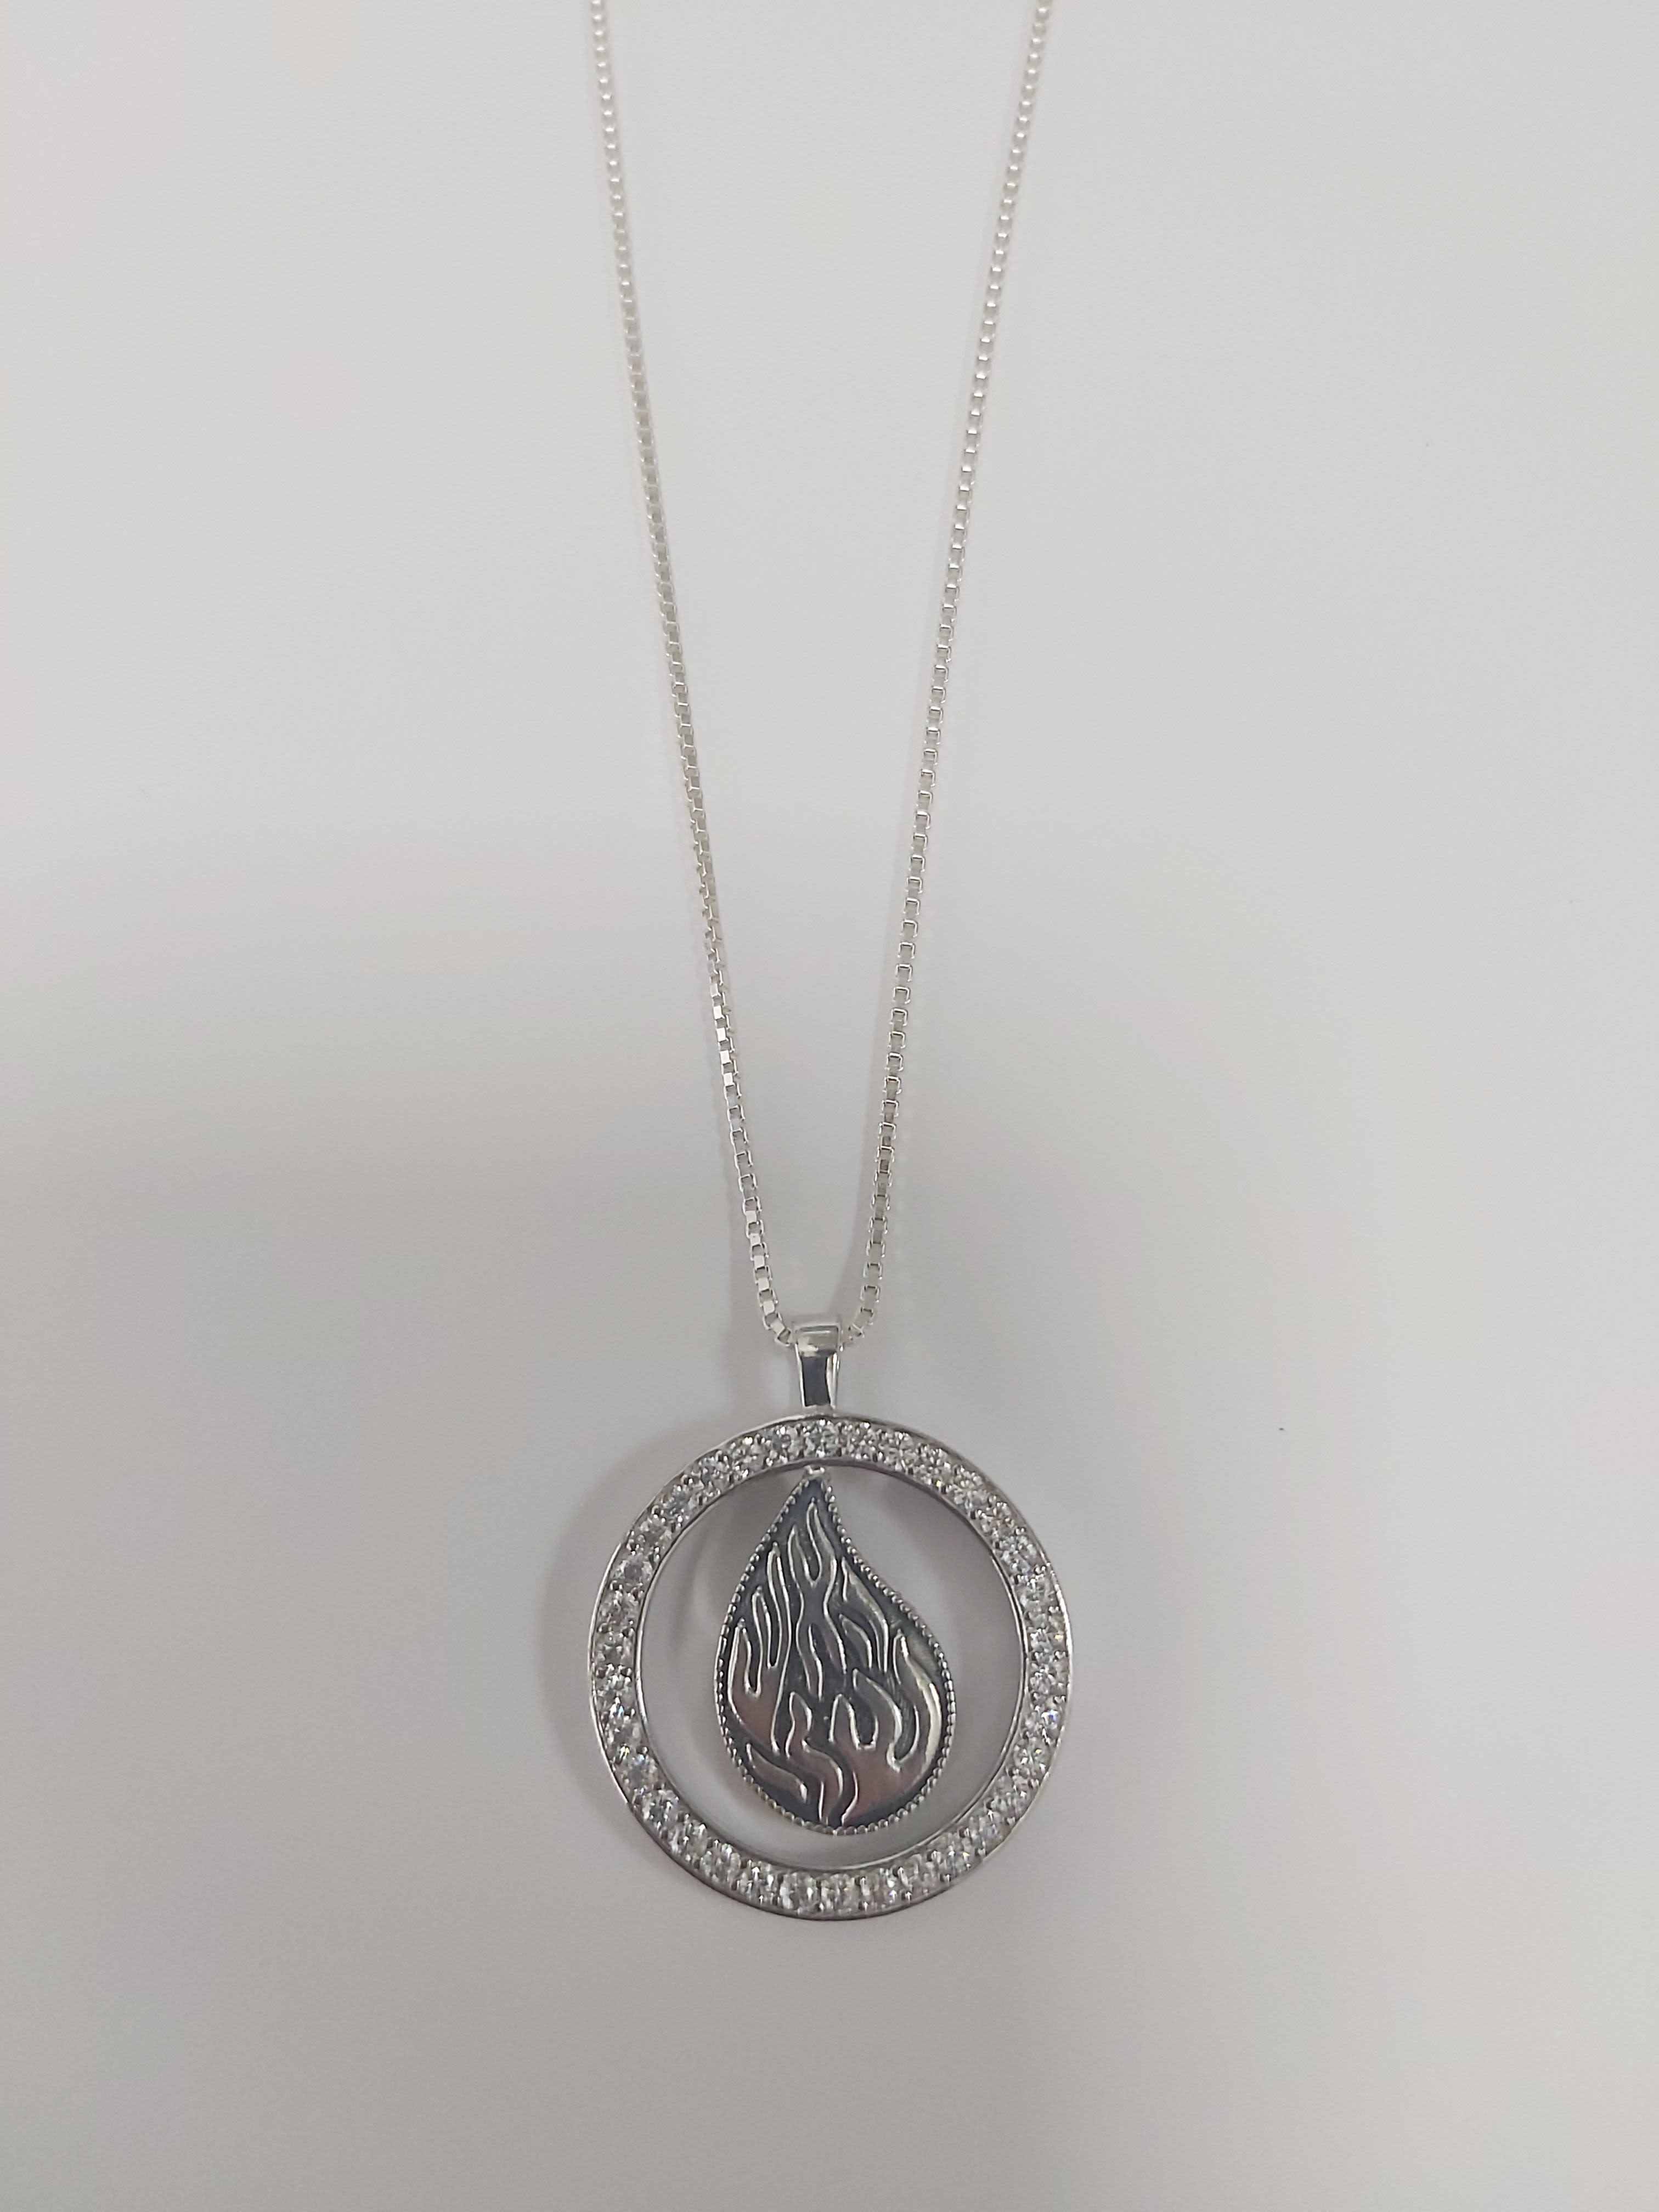 "Necklace with Chain and Pure Silver ""My Fire"" Pendant"